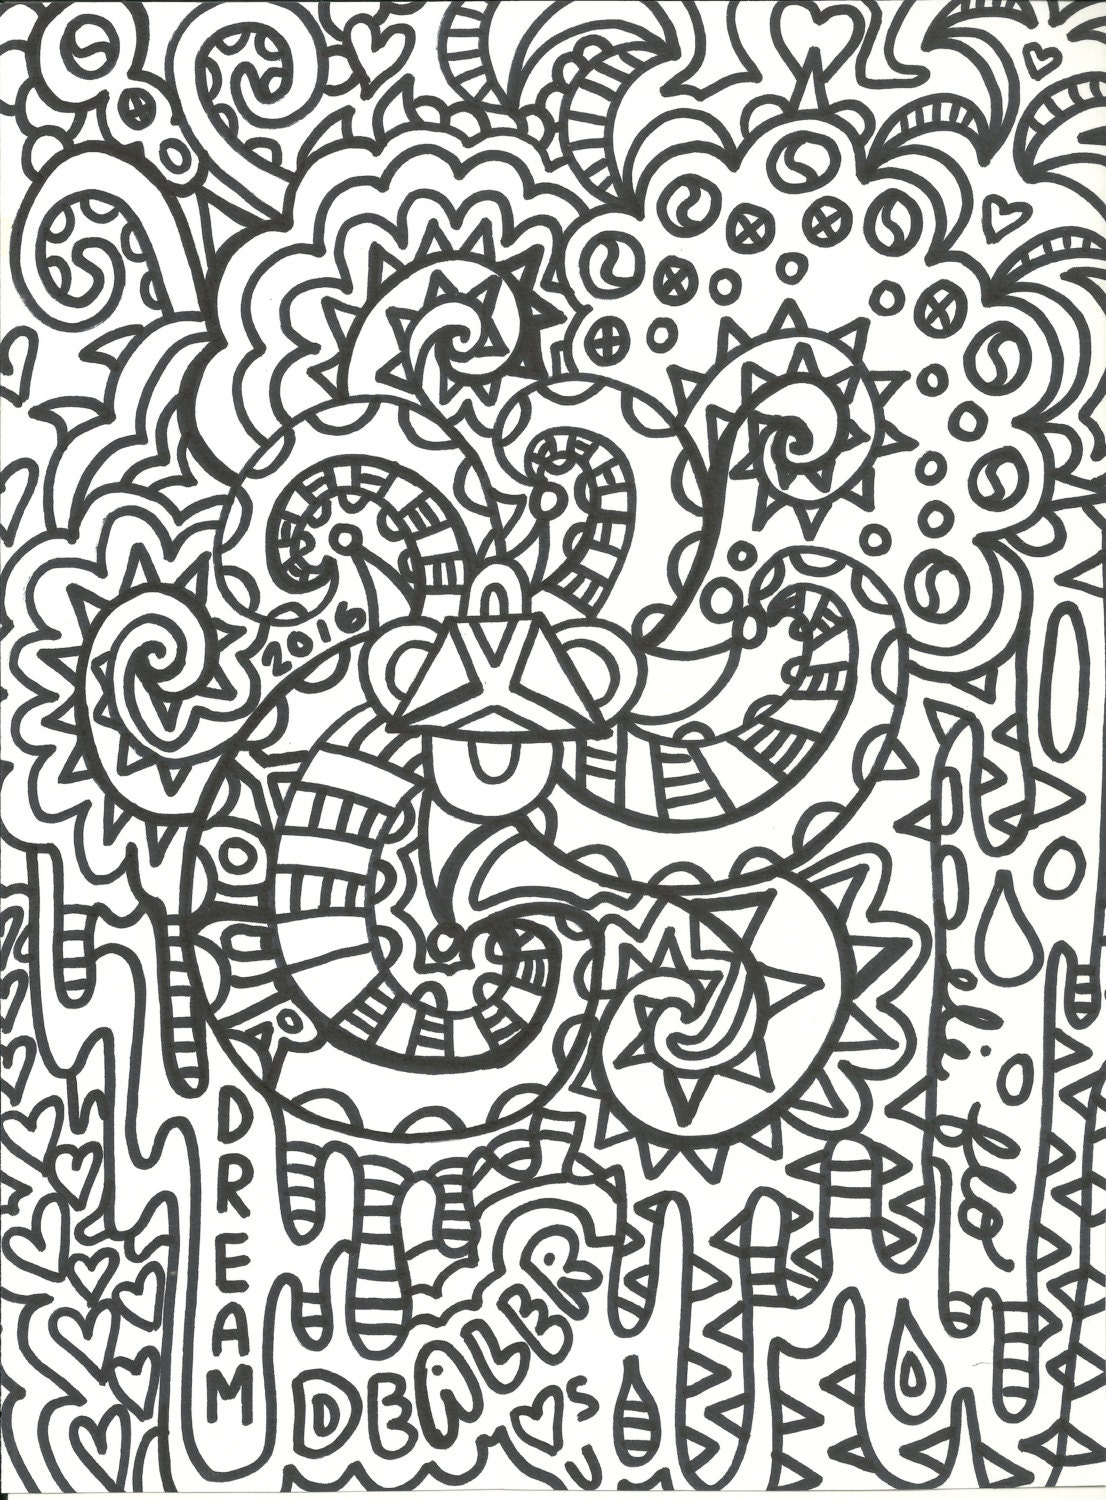 Coloring book download zip - Adult Coloring Book Psychedelic Unique Designs Digital Download 5 Jpeg Files Print Your Own Unlimited Ydd Art Prints